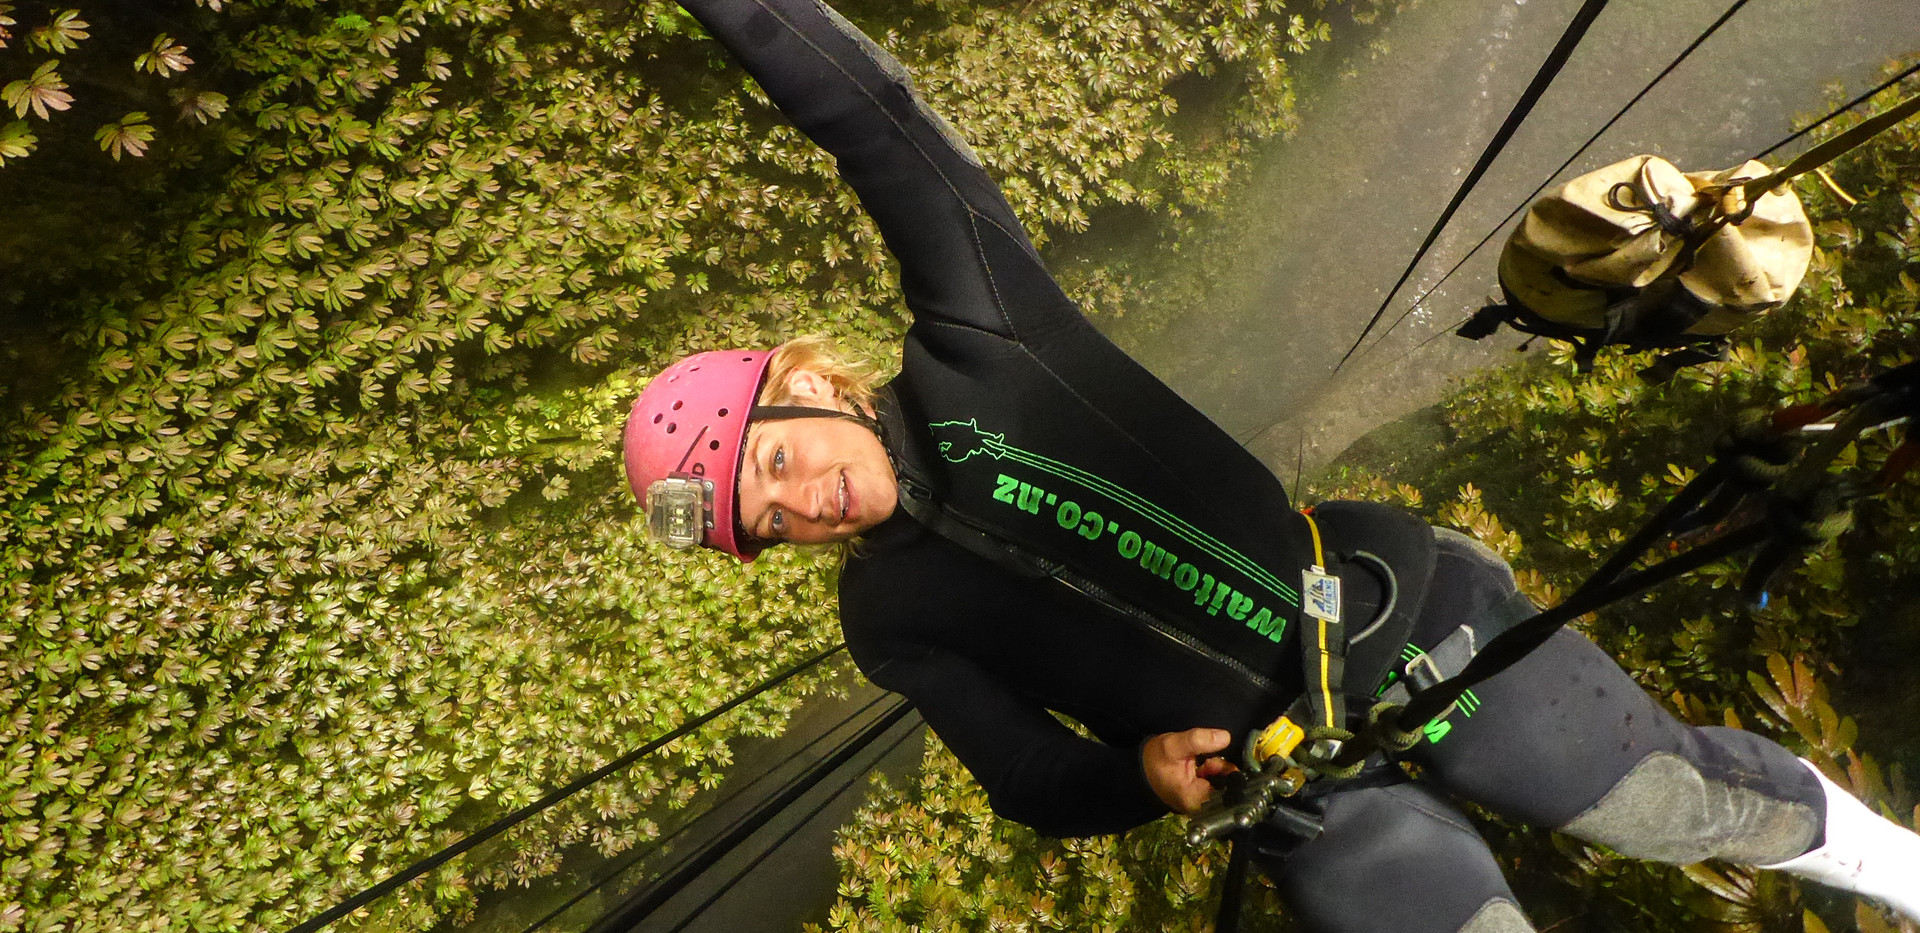 Abseiling down 100m